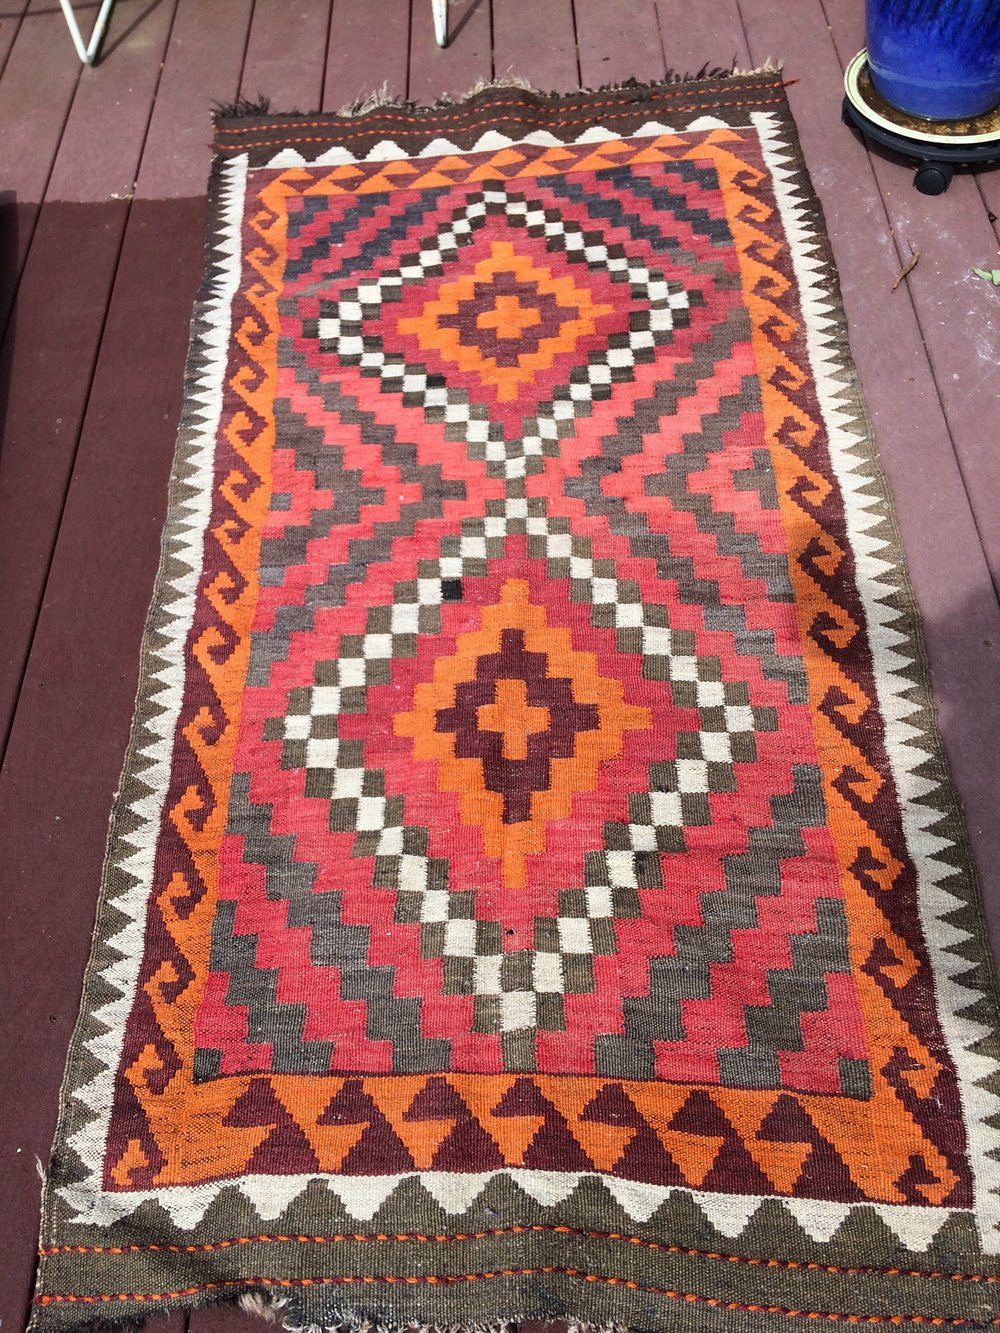 Beautiful Turkish Flat Weave Kilim https://www.etsy.com/listing/527579136/on-sale-turkish-wool-flat-weave-kilim